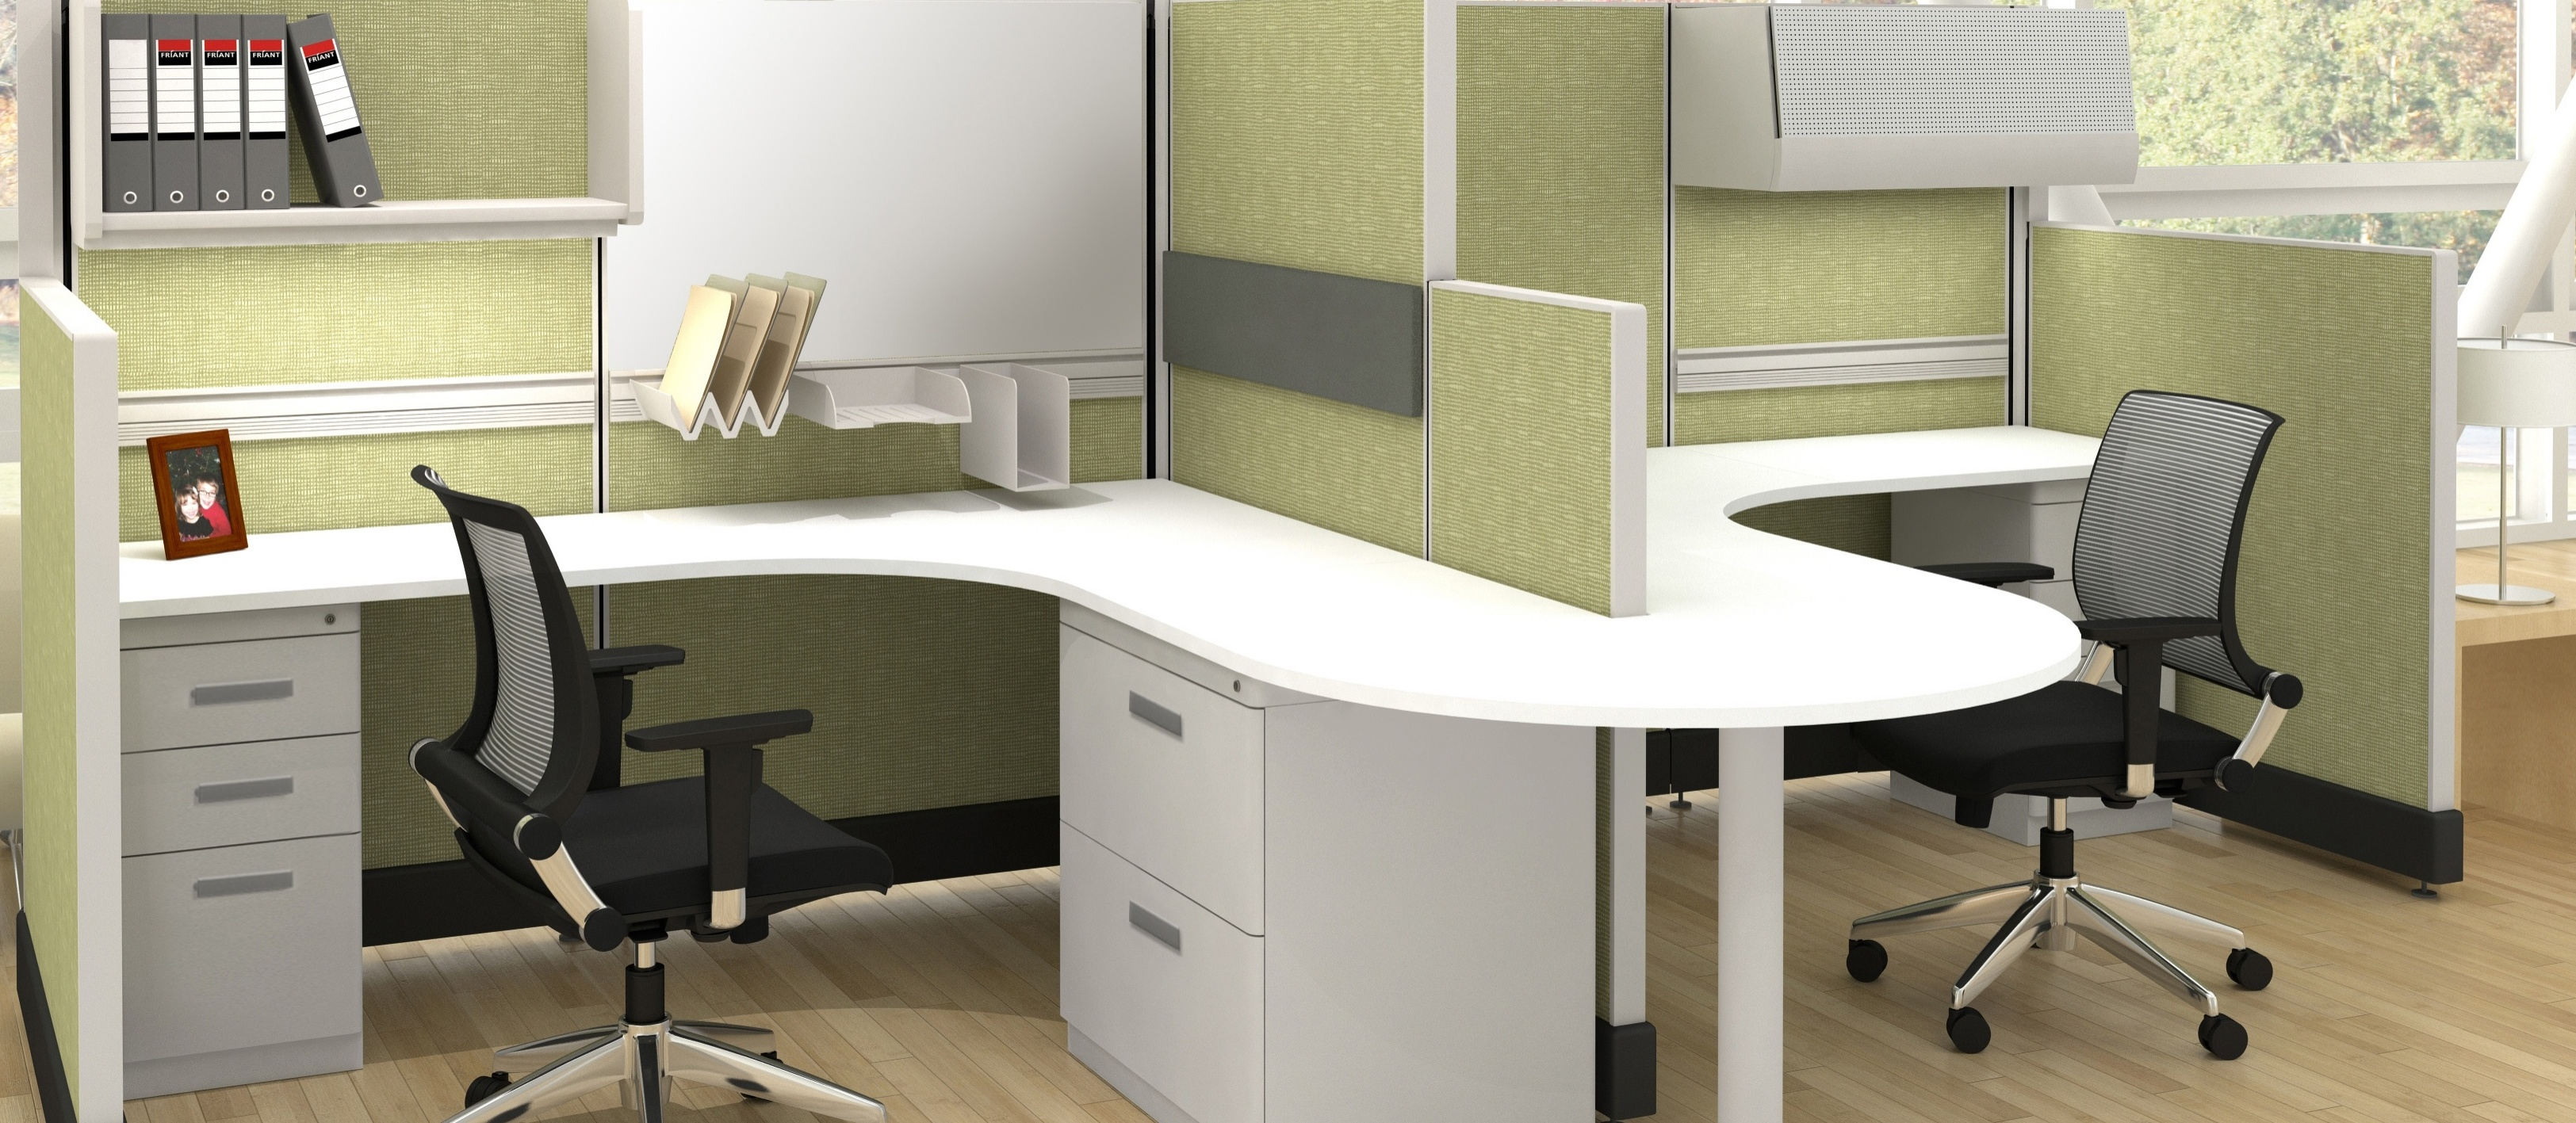 download office desk cubicles design. Wonderful Office Ebook Cubicles Workstations And Download Office Desk Cubicles Design S